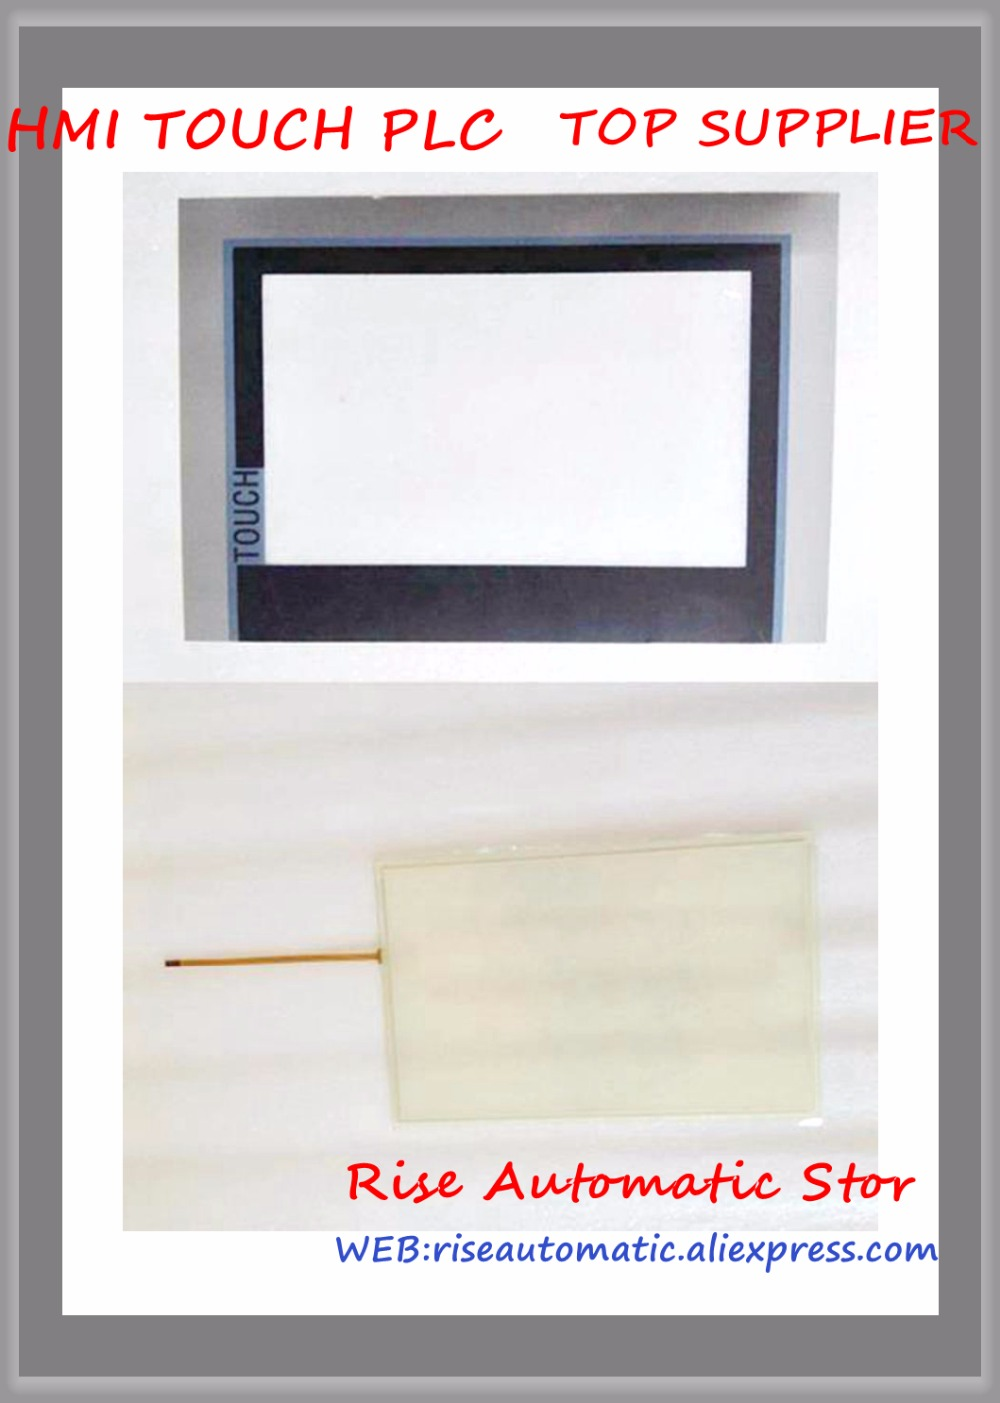 New Touch Glass Protective film 6AV2124 0MC01 0AX0 for HMI TP1200 12 touch panel 6AV2 124